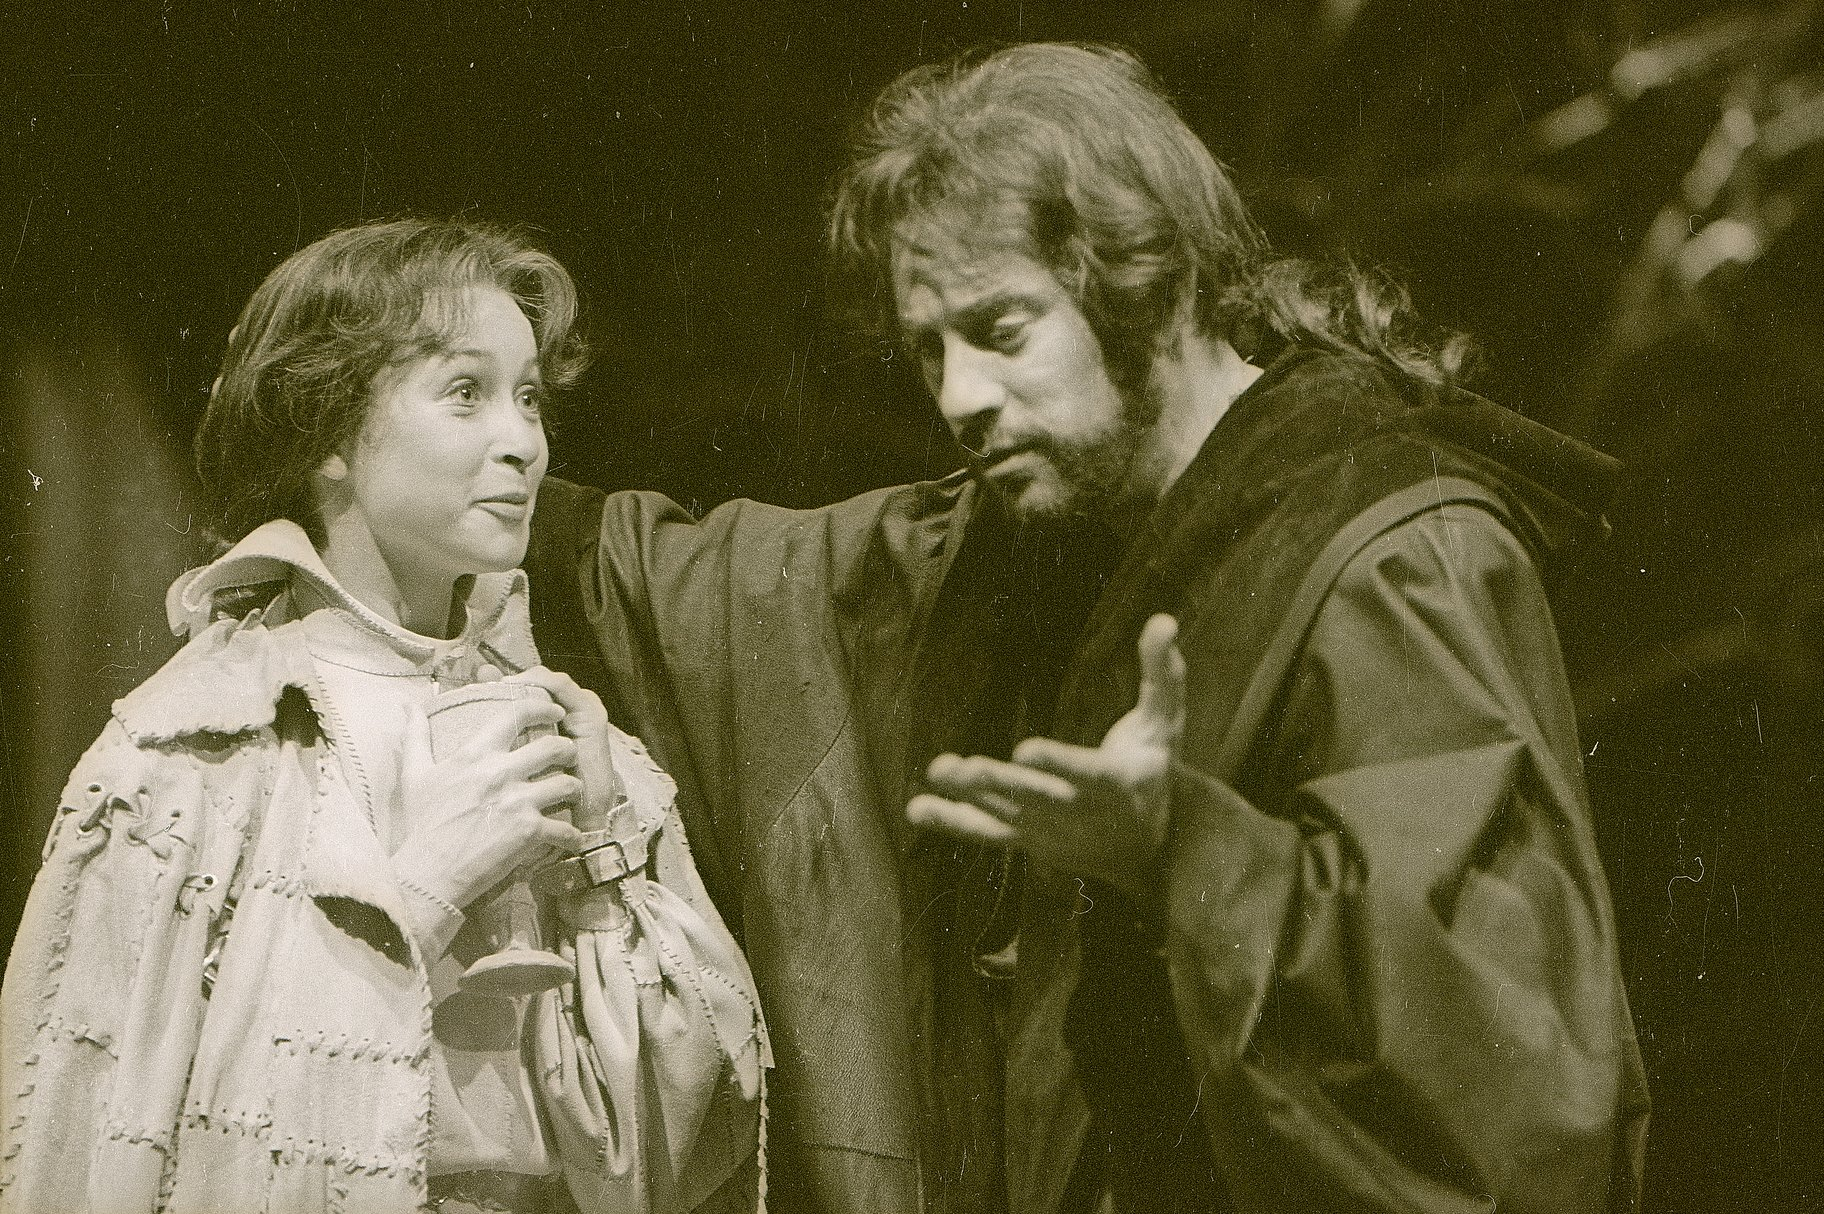 Viola, dressed as 'Ceasrio' in a travelling cloak and holding a goblet, talks to Orsino who is dressed in a dark robe in the 1979 production of Twelfth Night.